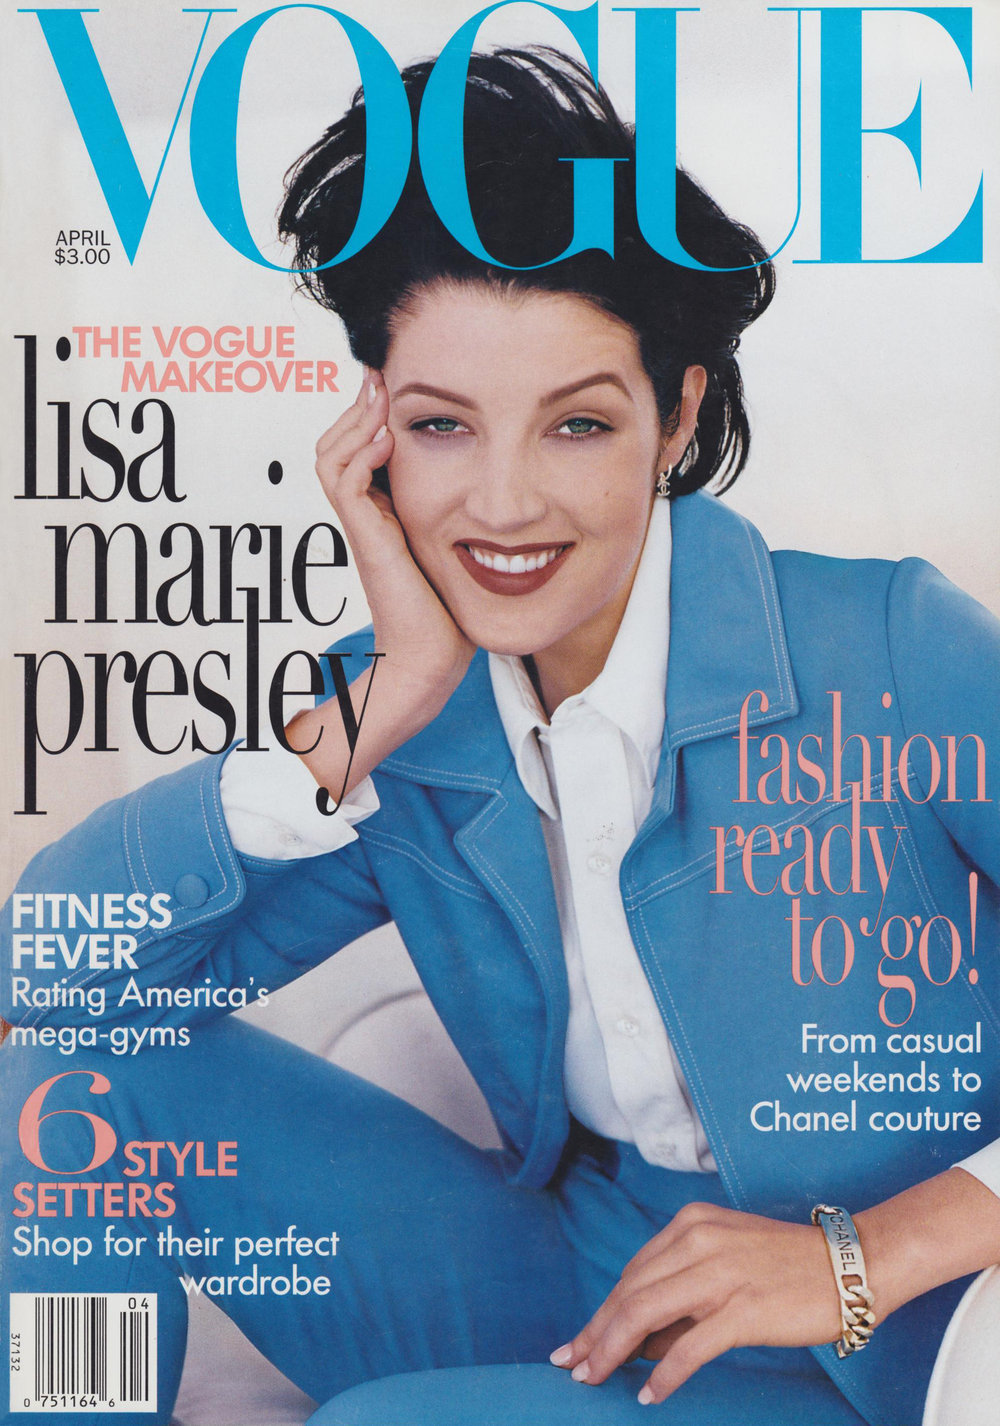 Lisa Marie Presley wearing an Anna Sui suit on the cover of Vogue, April 1996. Photo by Steven Meisel.